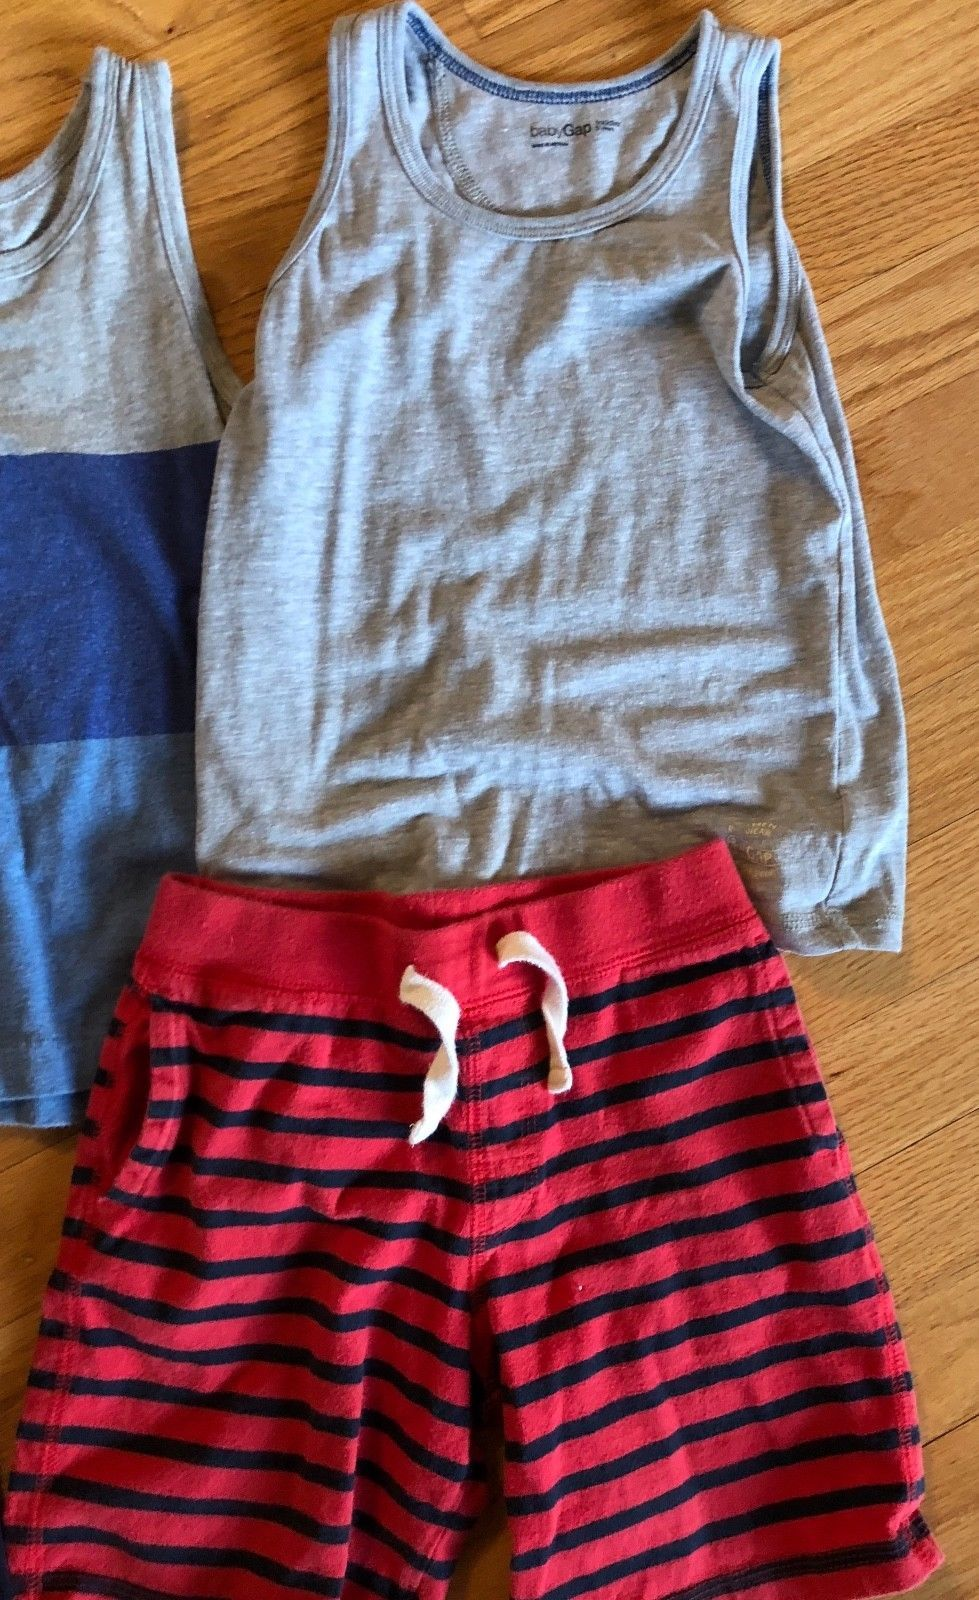 BABY GAP Tank Top + Knit Pull On Shorts Lot of 7 - Summer Outfits Blue Gray Red image 2